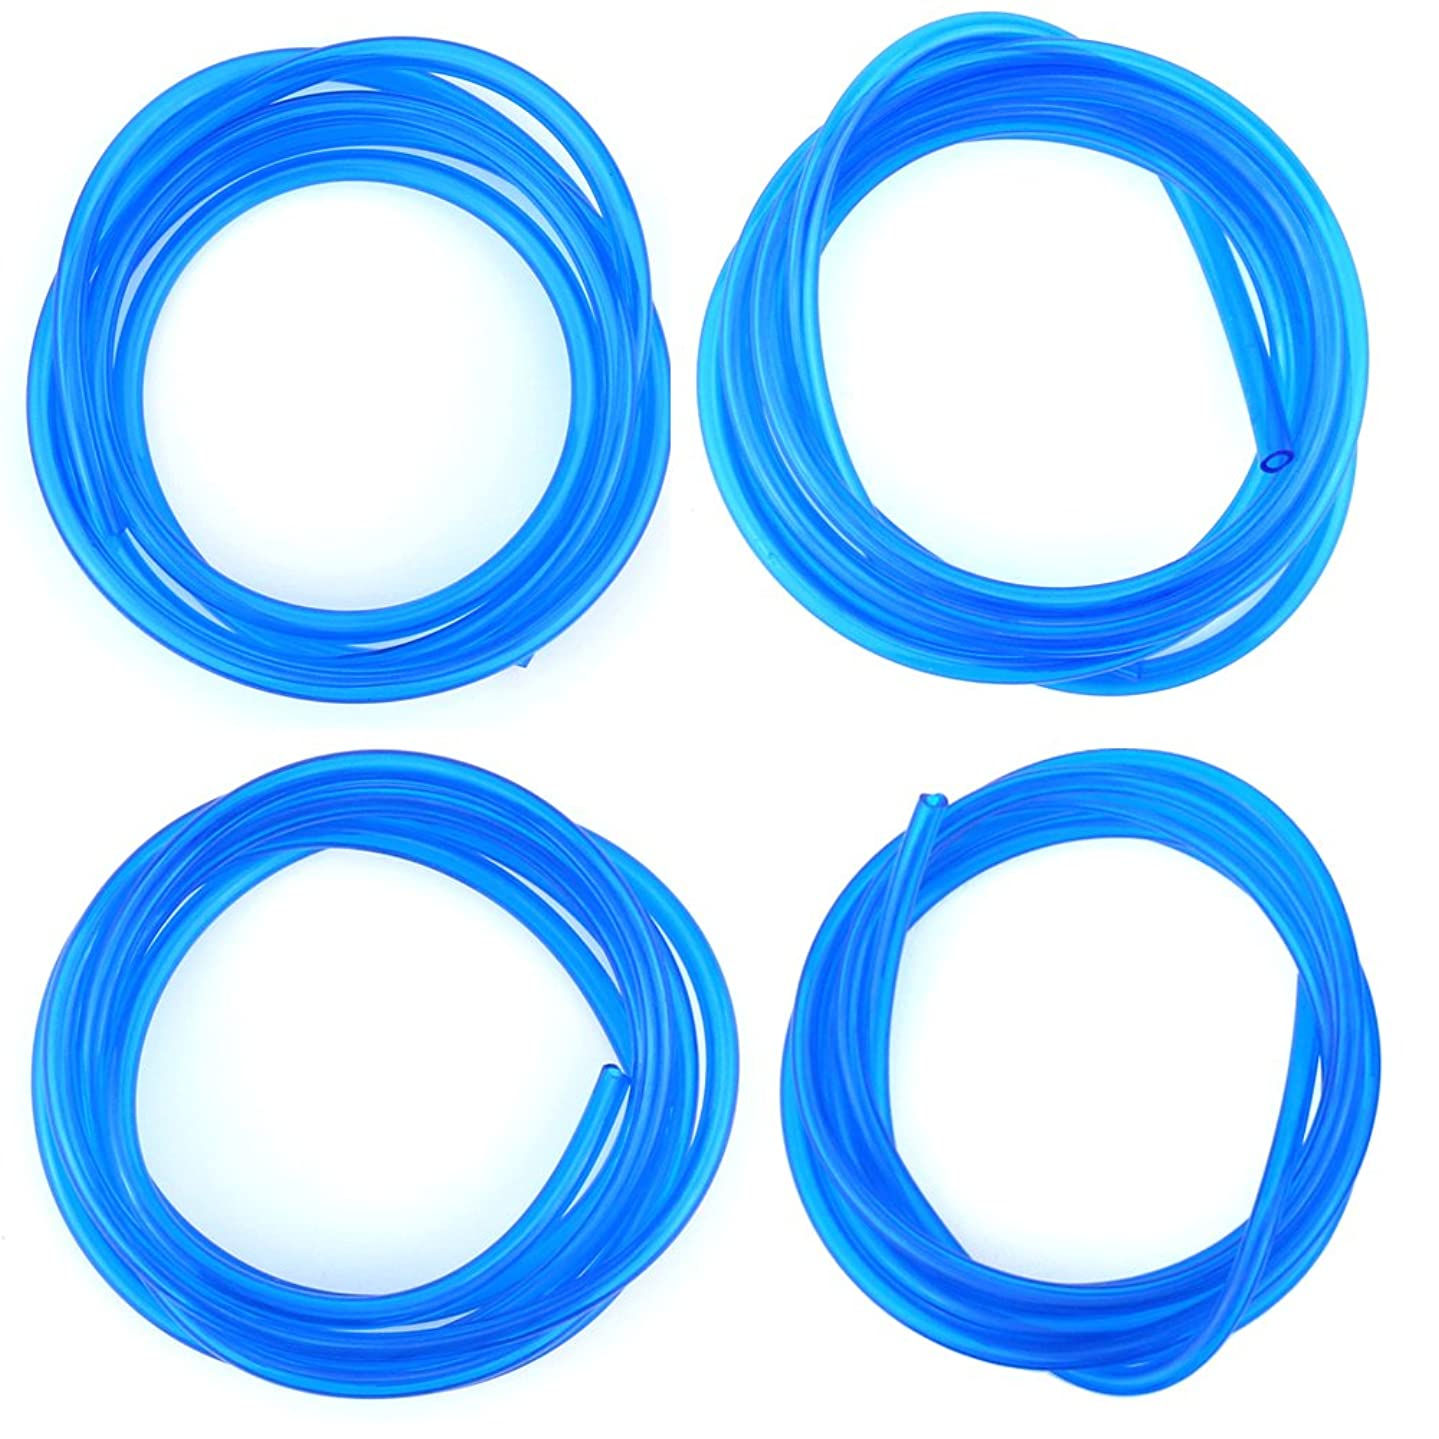 Hilitchi 20-Feet Petrol Fuel Line Hose Lubricant of 4 Sizes Tubing for Weedeater Chainsaw Common 2 Cycle Small Engines (Light Blue)